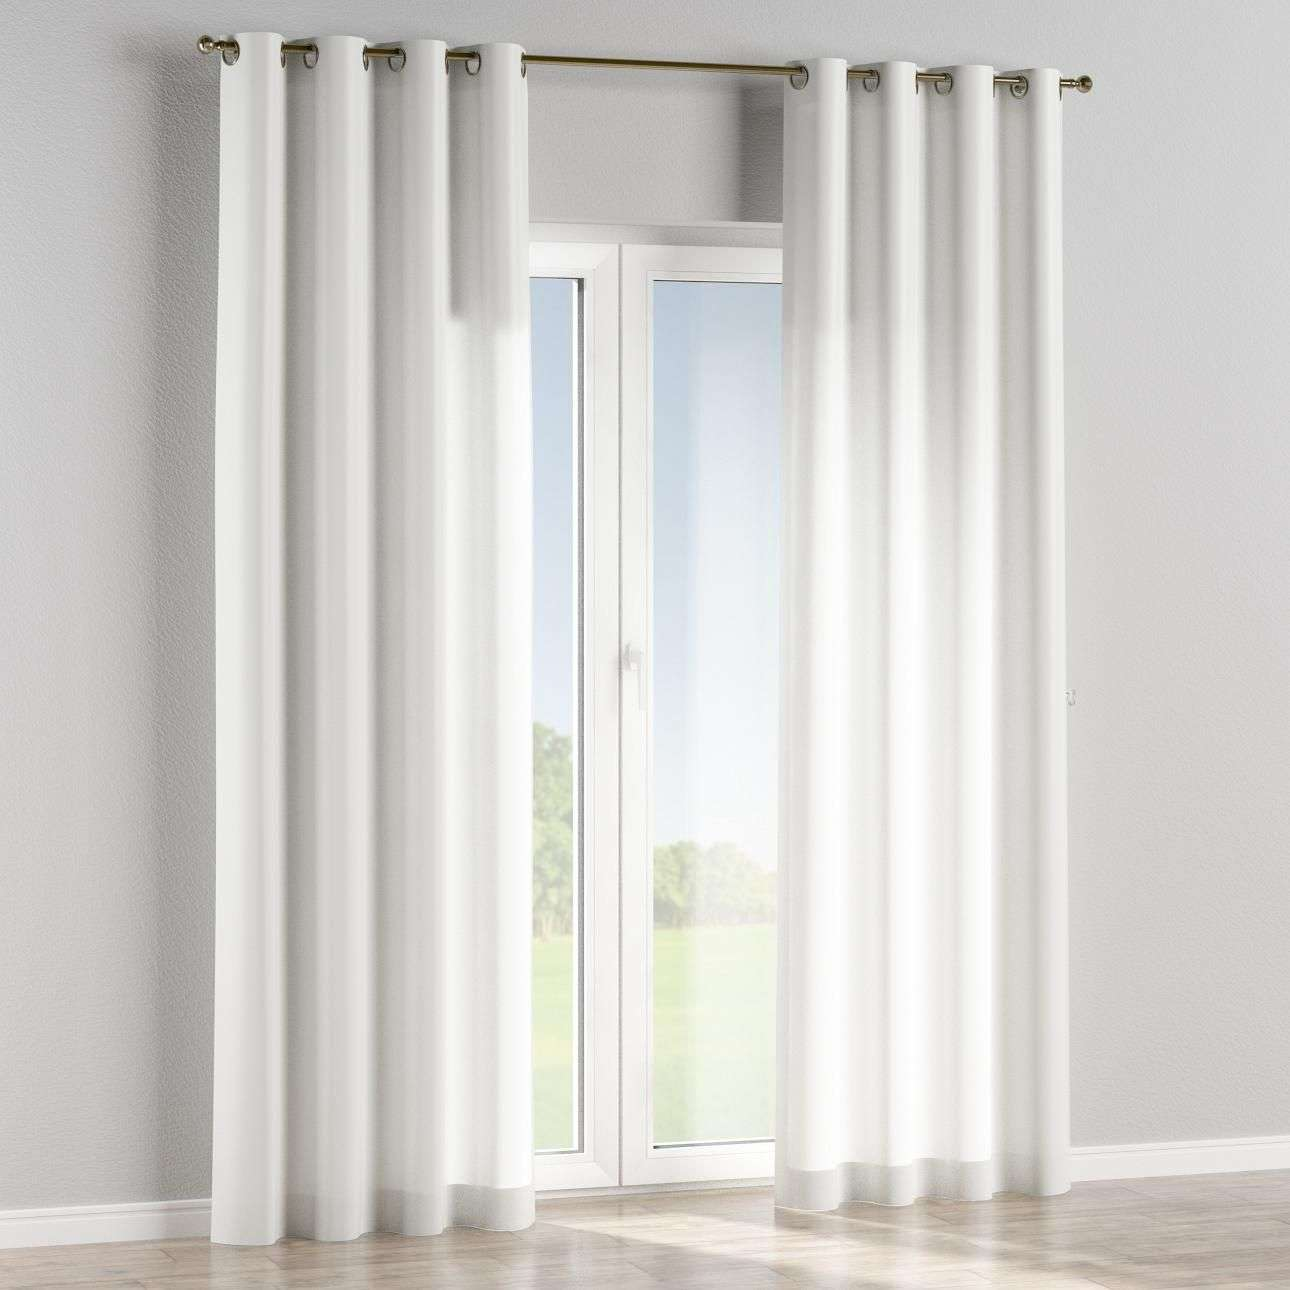 Eyelet curtains in collection Milano, fabric: 150-22